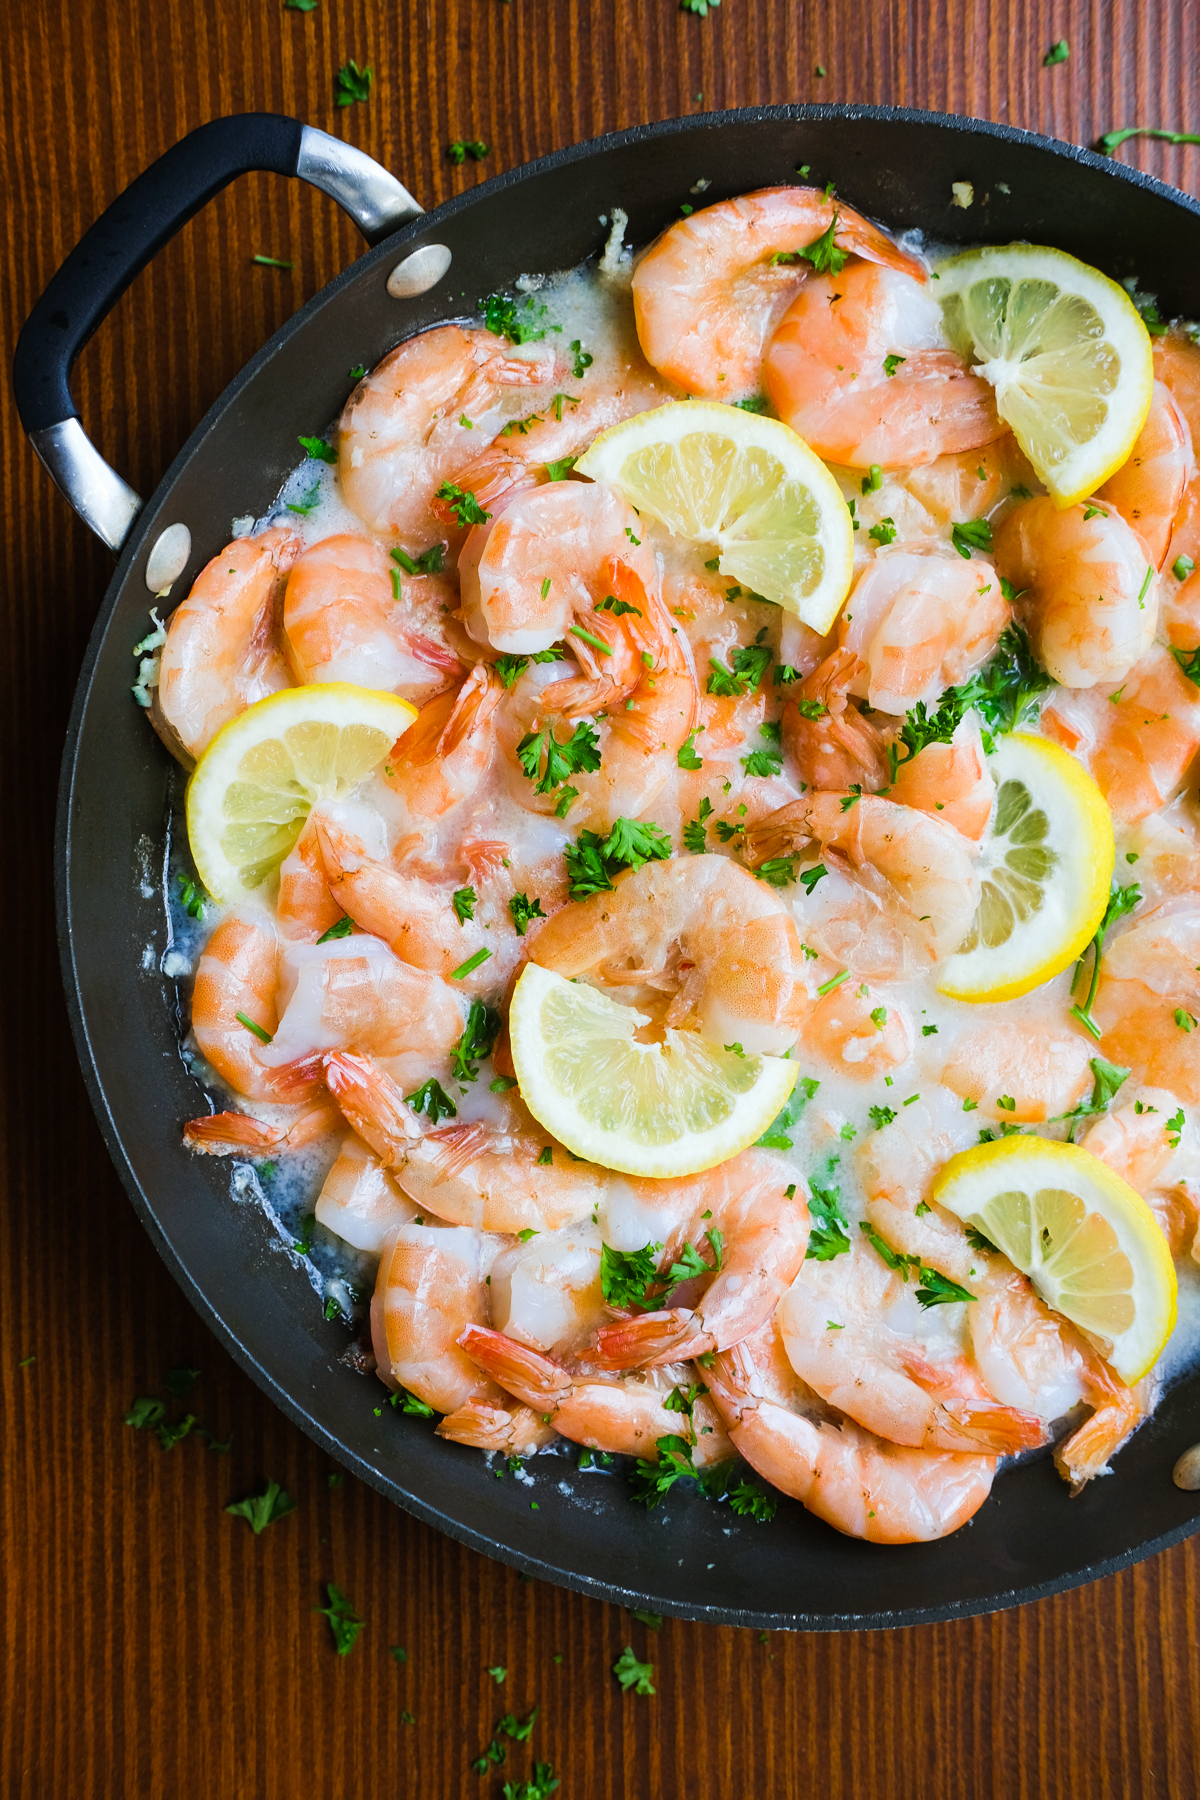 lemon garlic shrimp in white wine sauce with lemons